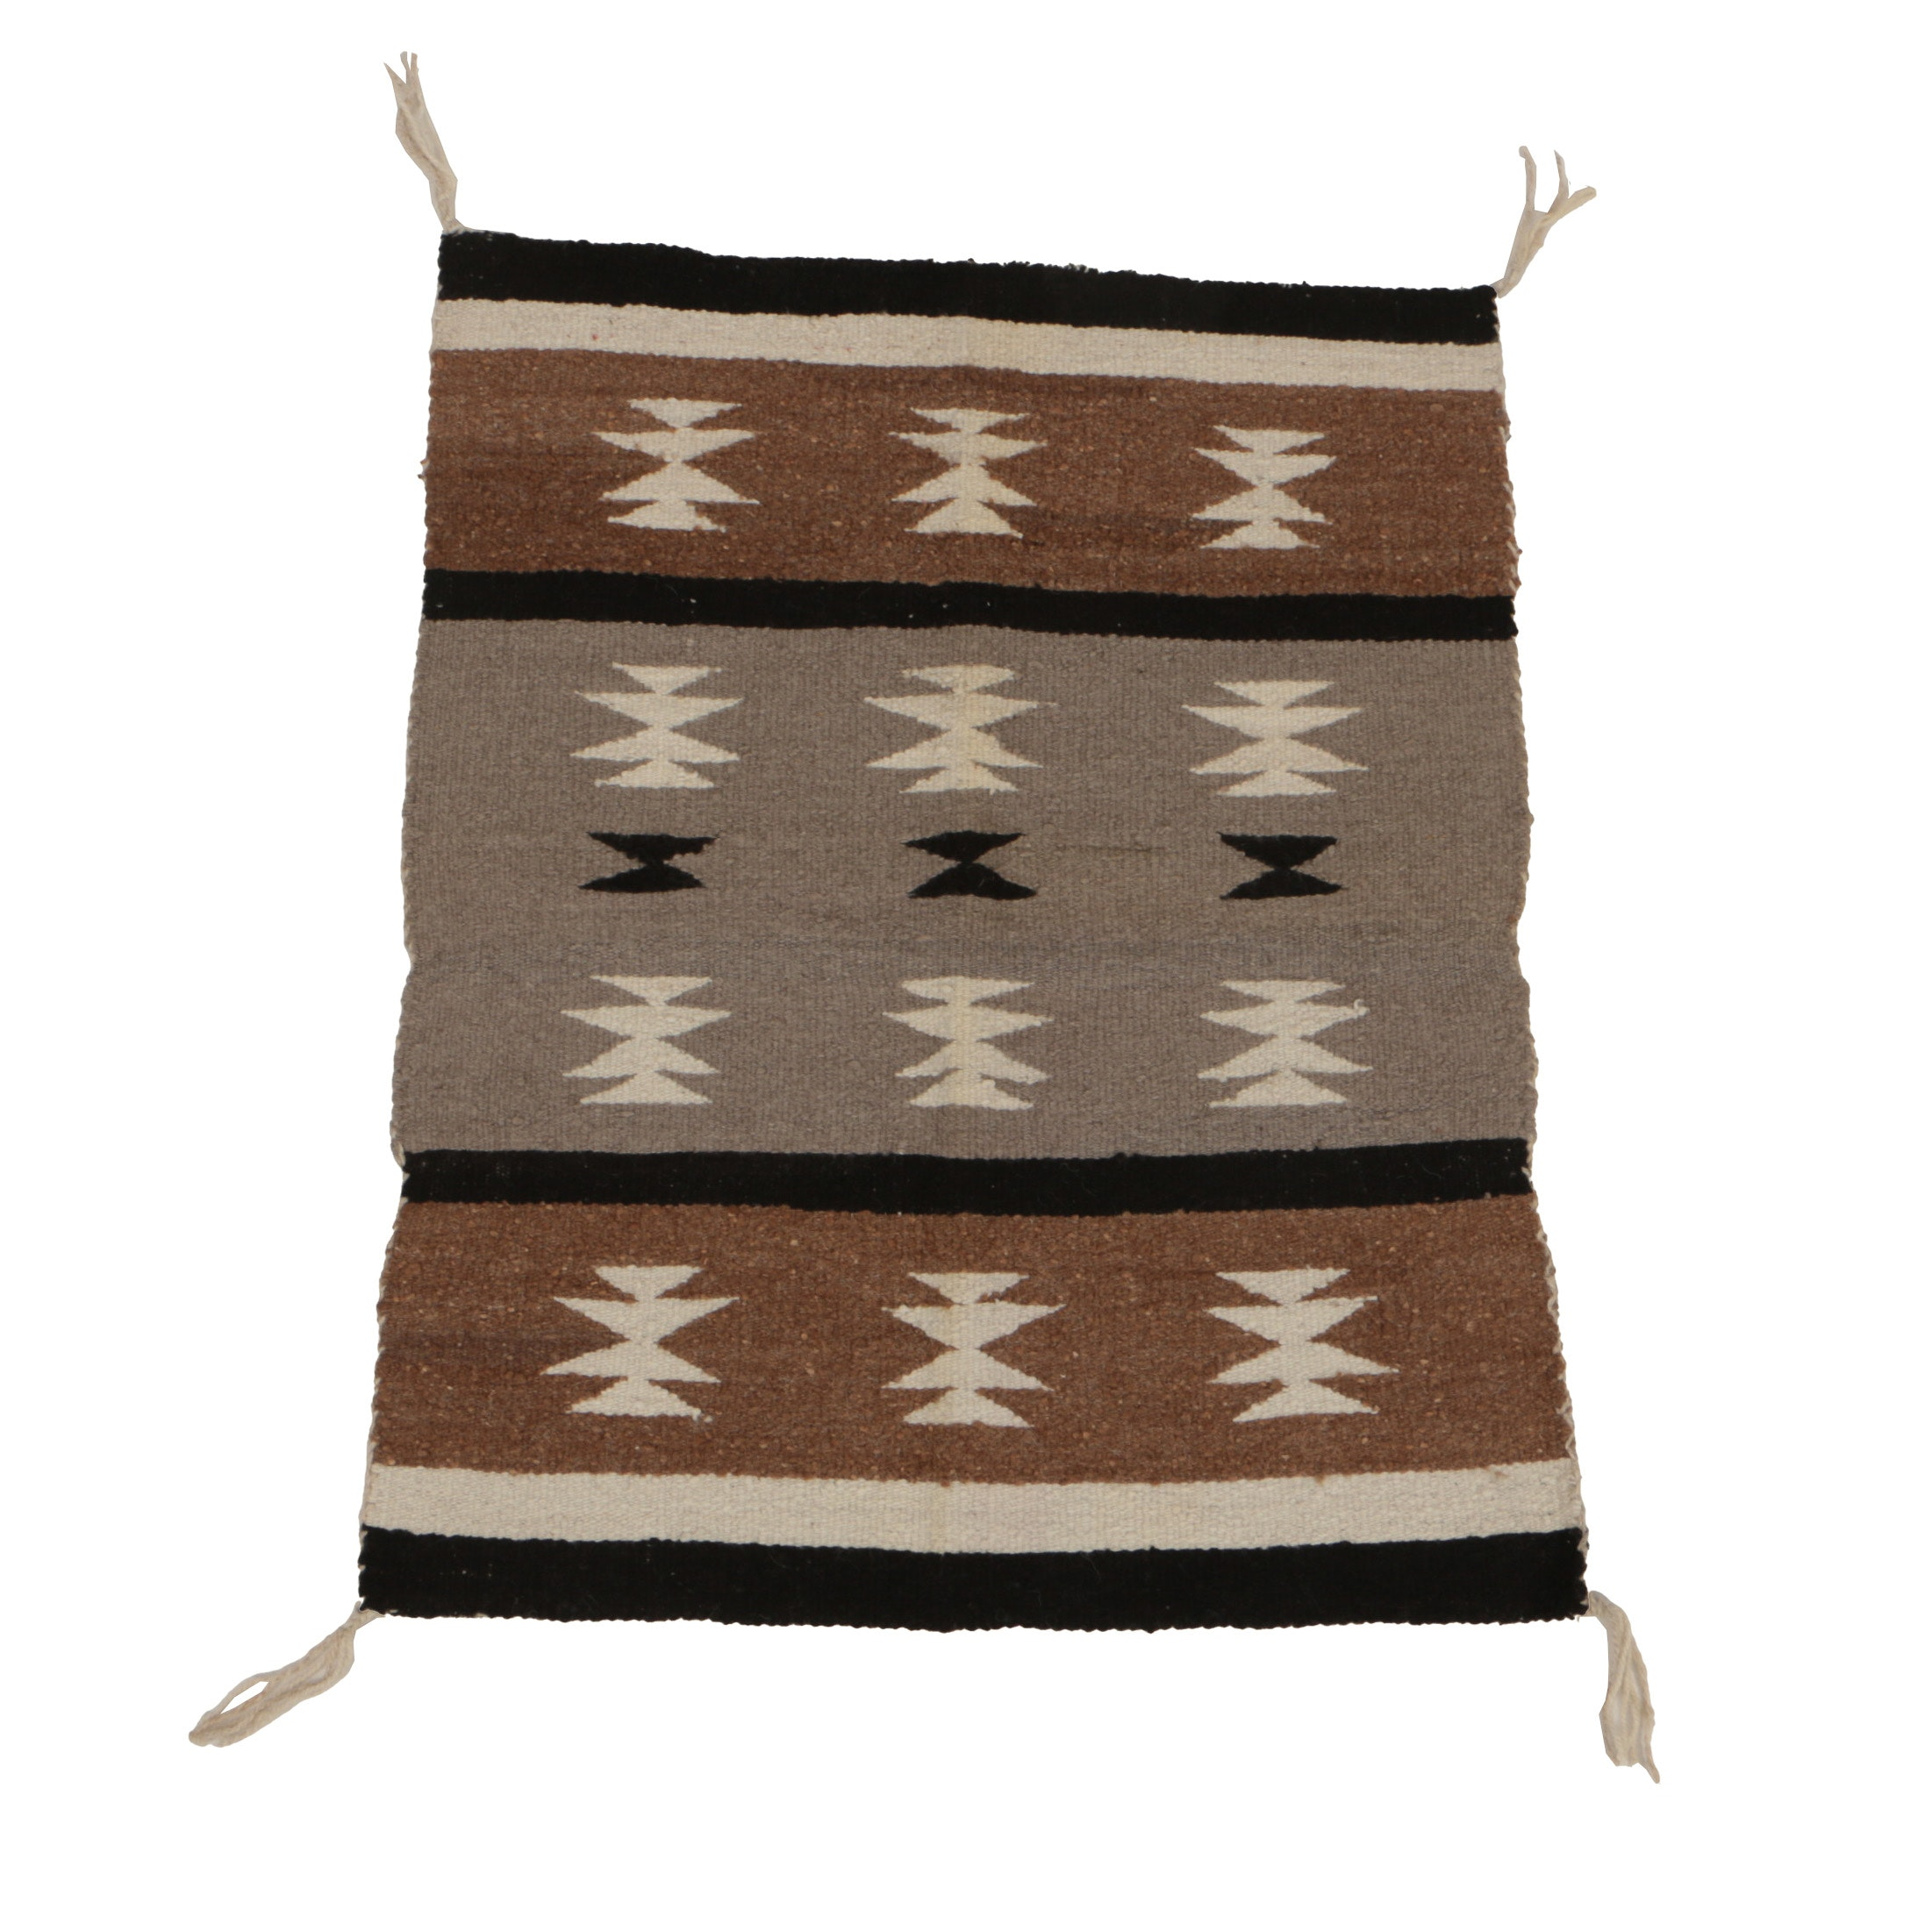 Handwoven Navajo Rug in the Two Grey Hills Style